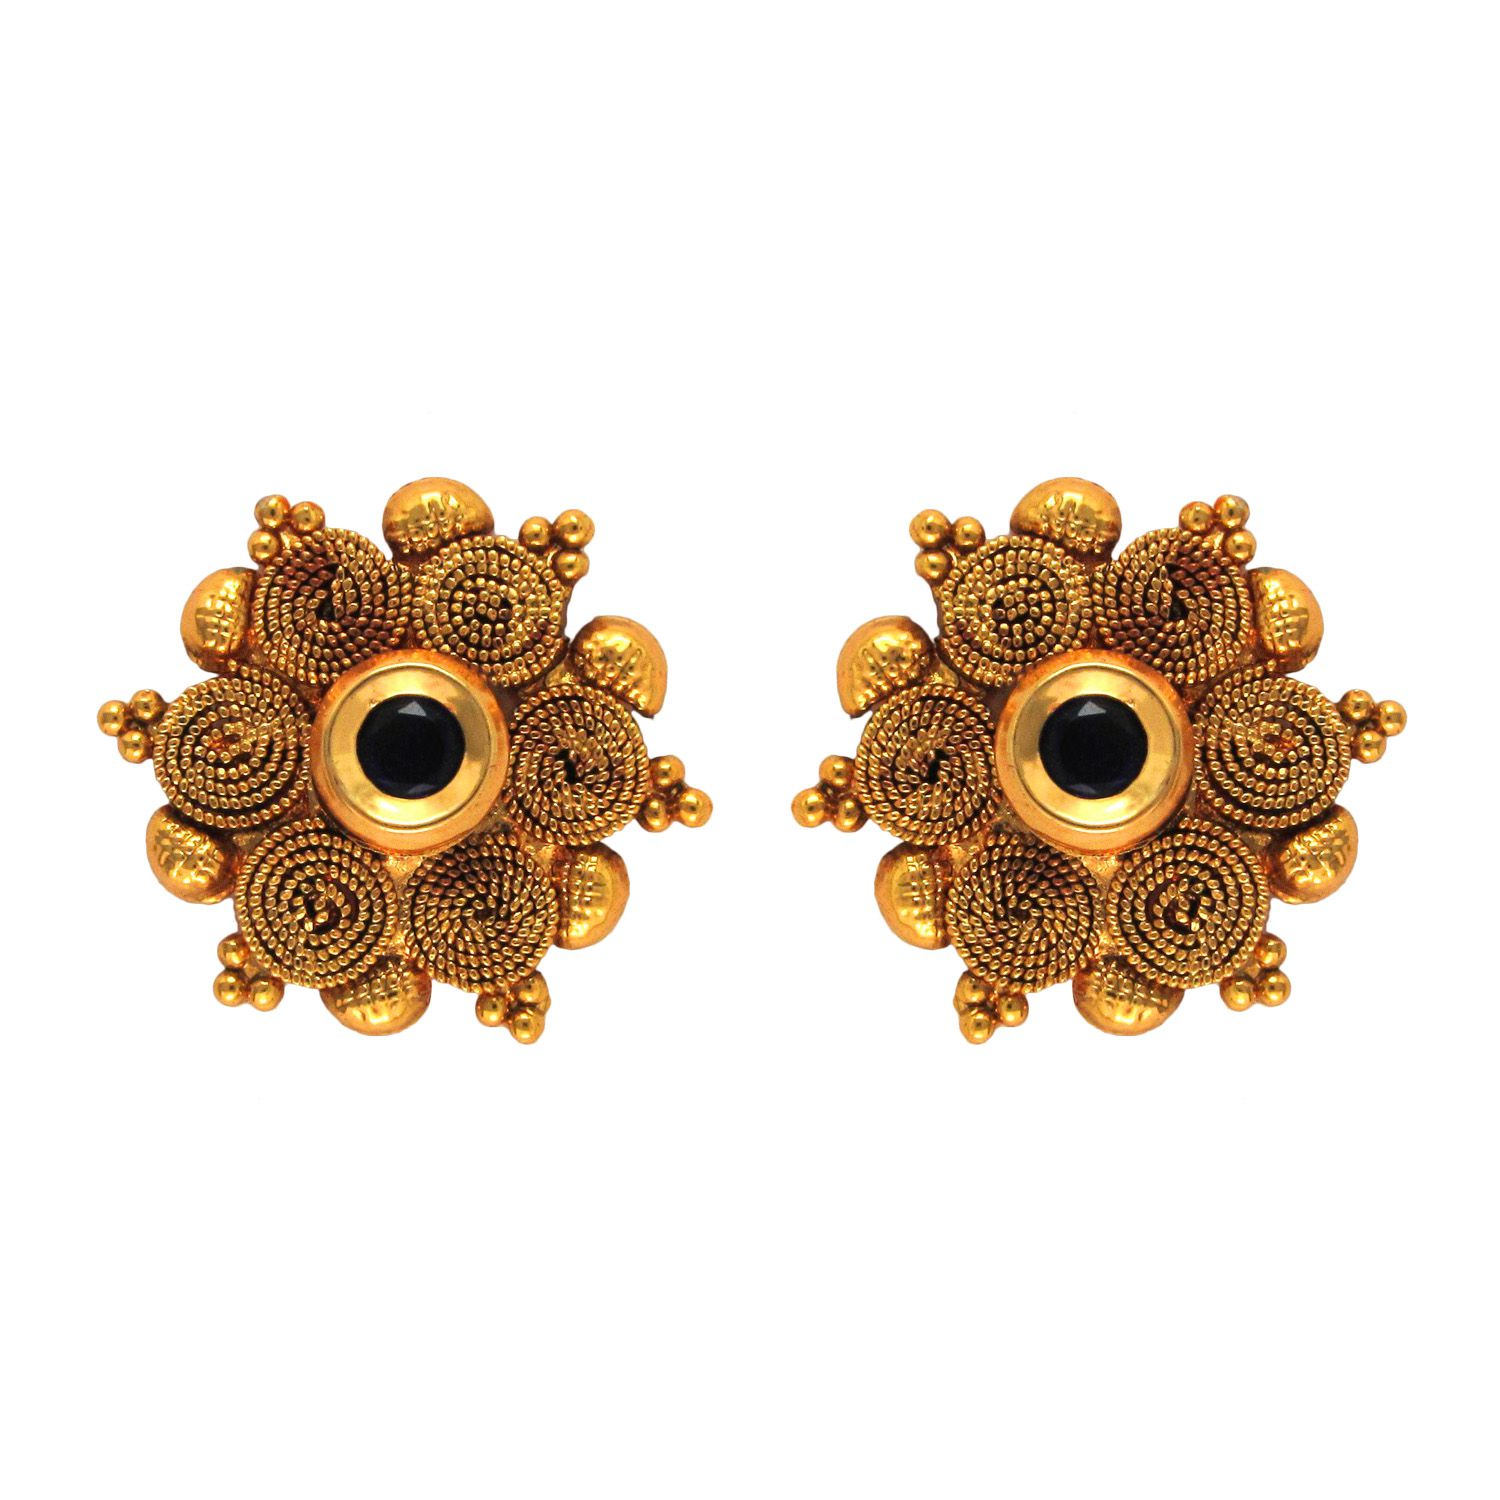 Om Jewells Golden Alloy Stud Earrings